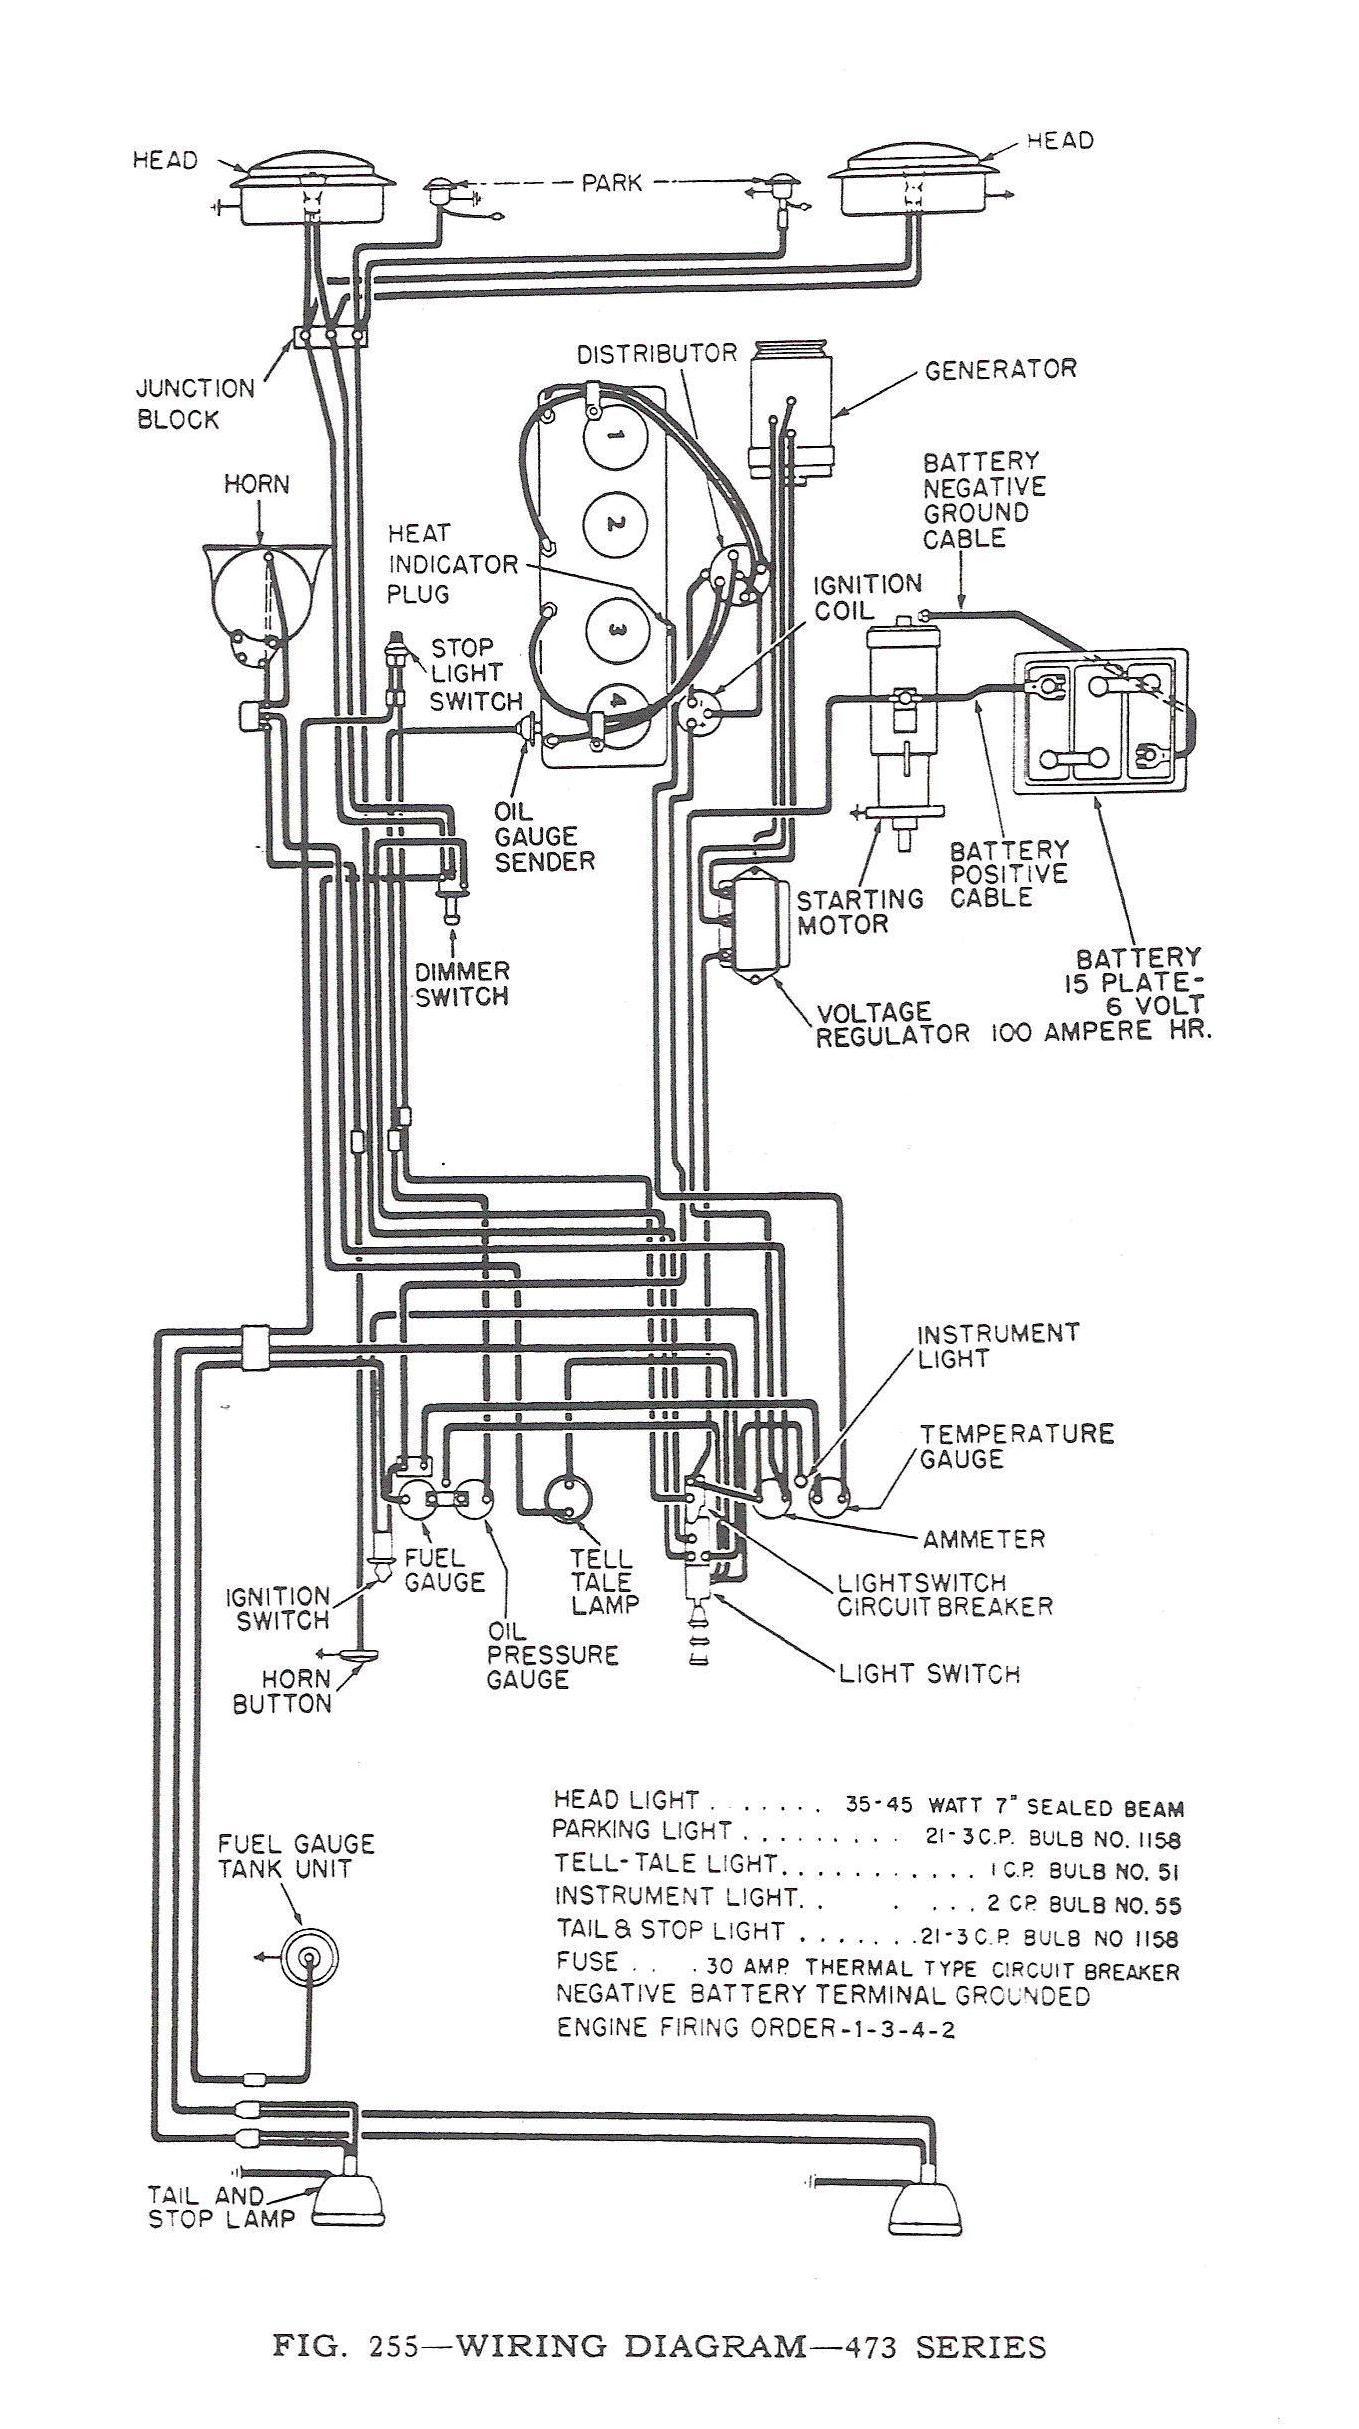 small resolution of 1952 jeep series 473 wiring diagrams google search willis overland jeep willys jeep